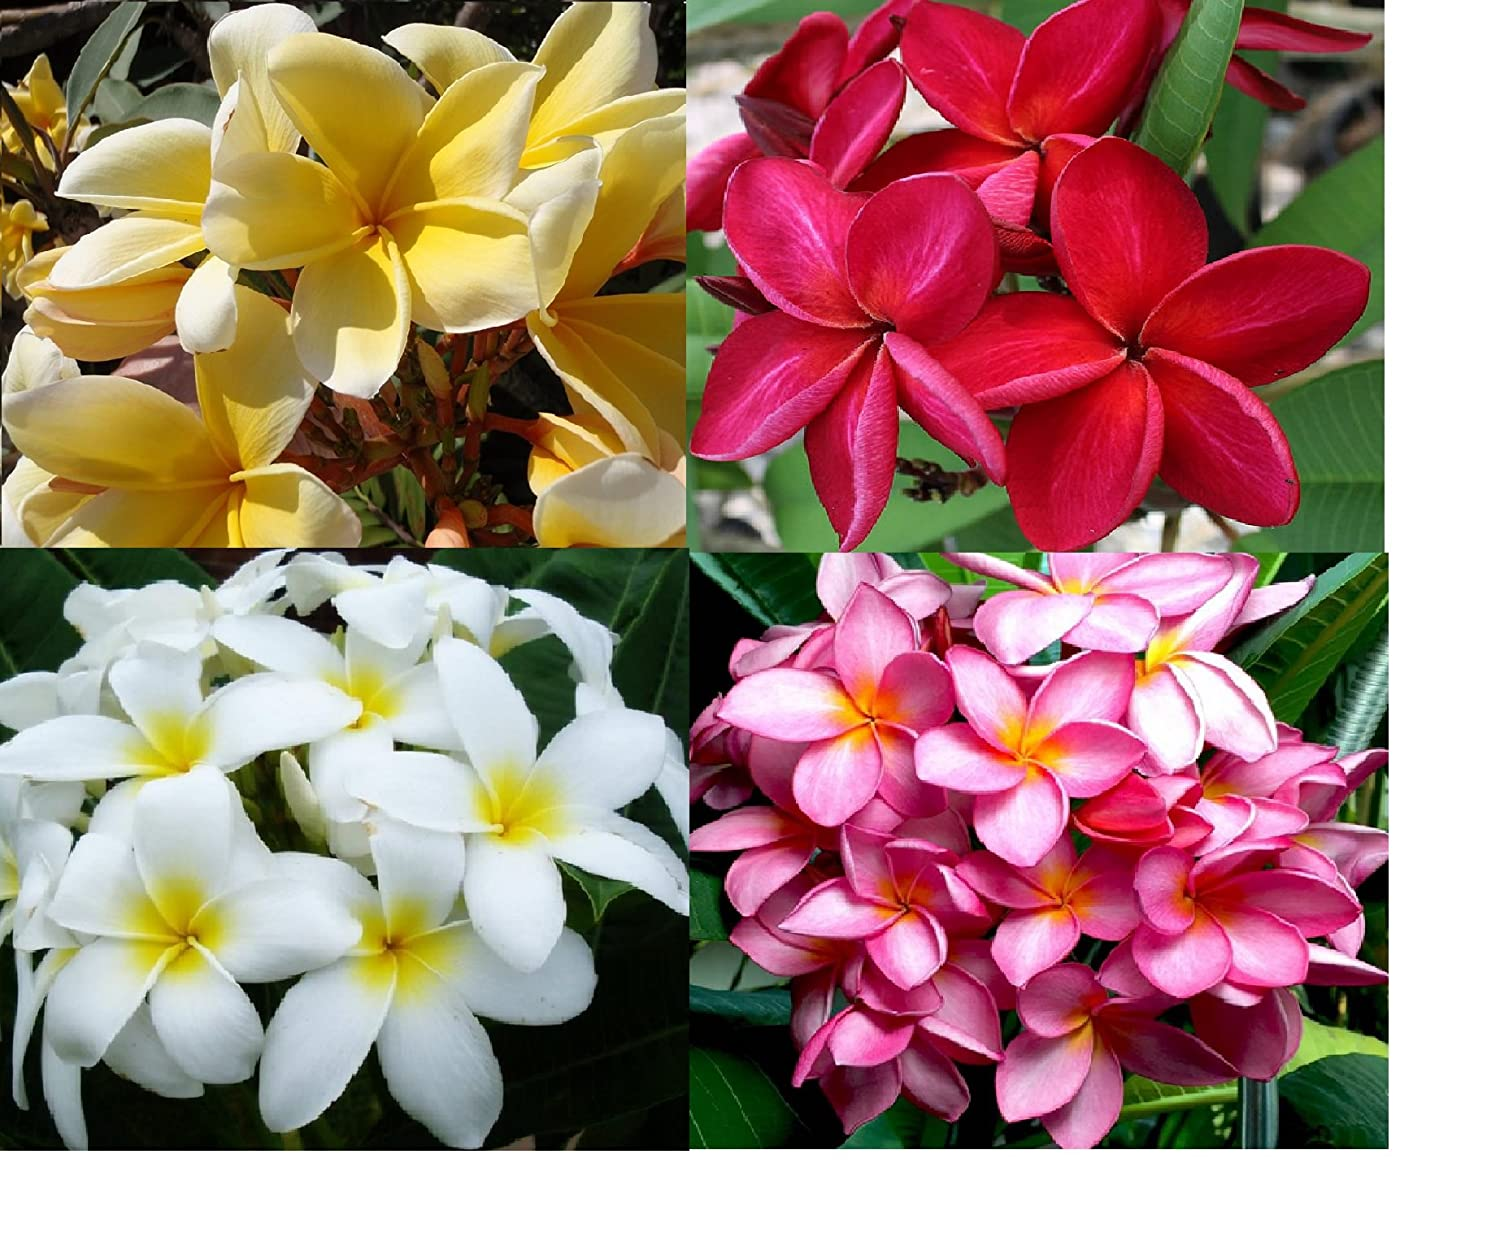 Amazon 4 hawaiian plumeria plant cuttings mixed colors grow amazon 4 hawaiian plumeria plant cuttings mixed colors grow hawaii by kanoa hawaii grocery gourmet food izmirmasajfo